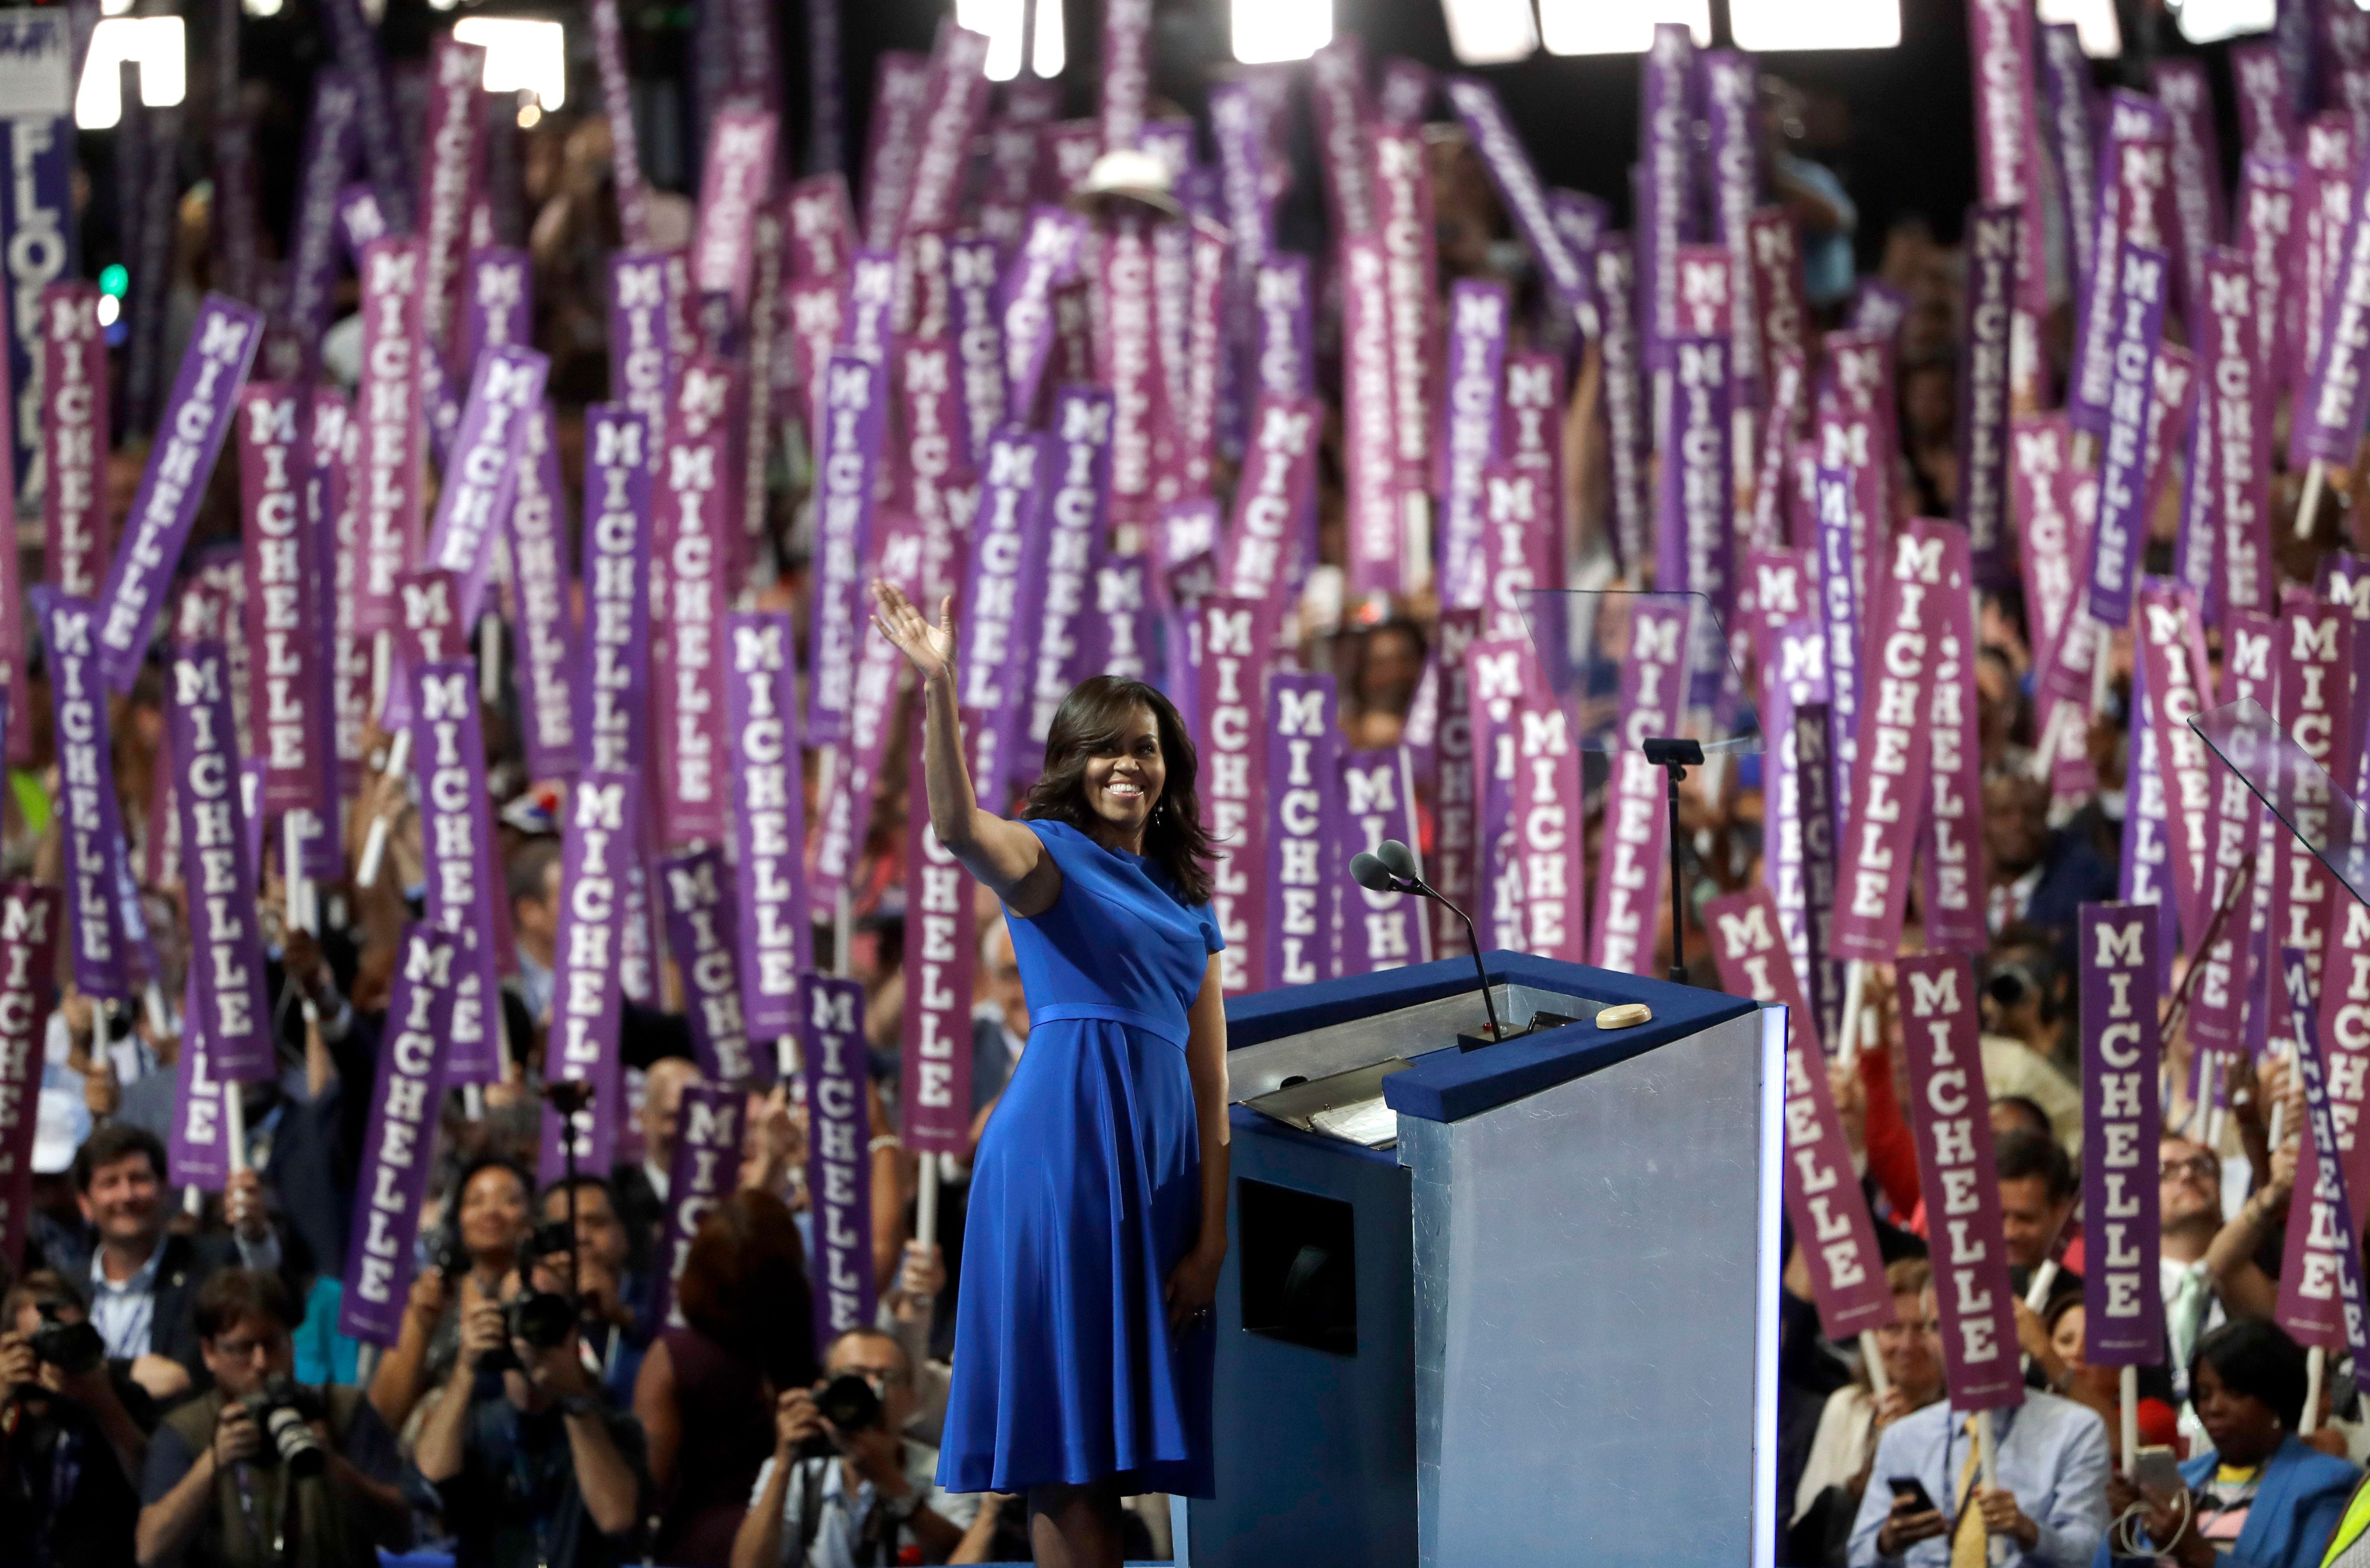 First Lady Michelle Obama waves as she speaks to delegates during the first day of the Democratic National Convention in Philadelphia , Monday, July 25, 2016. (AP Photo/Matt Rourke)